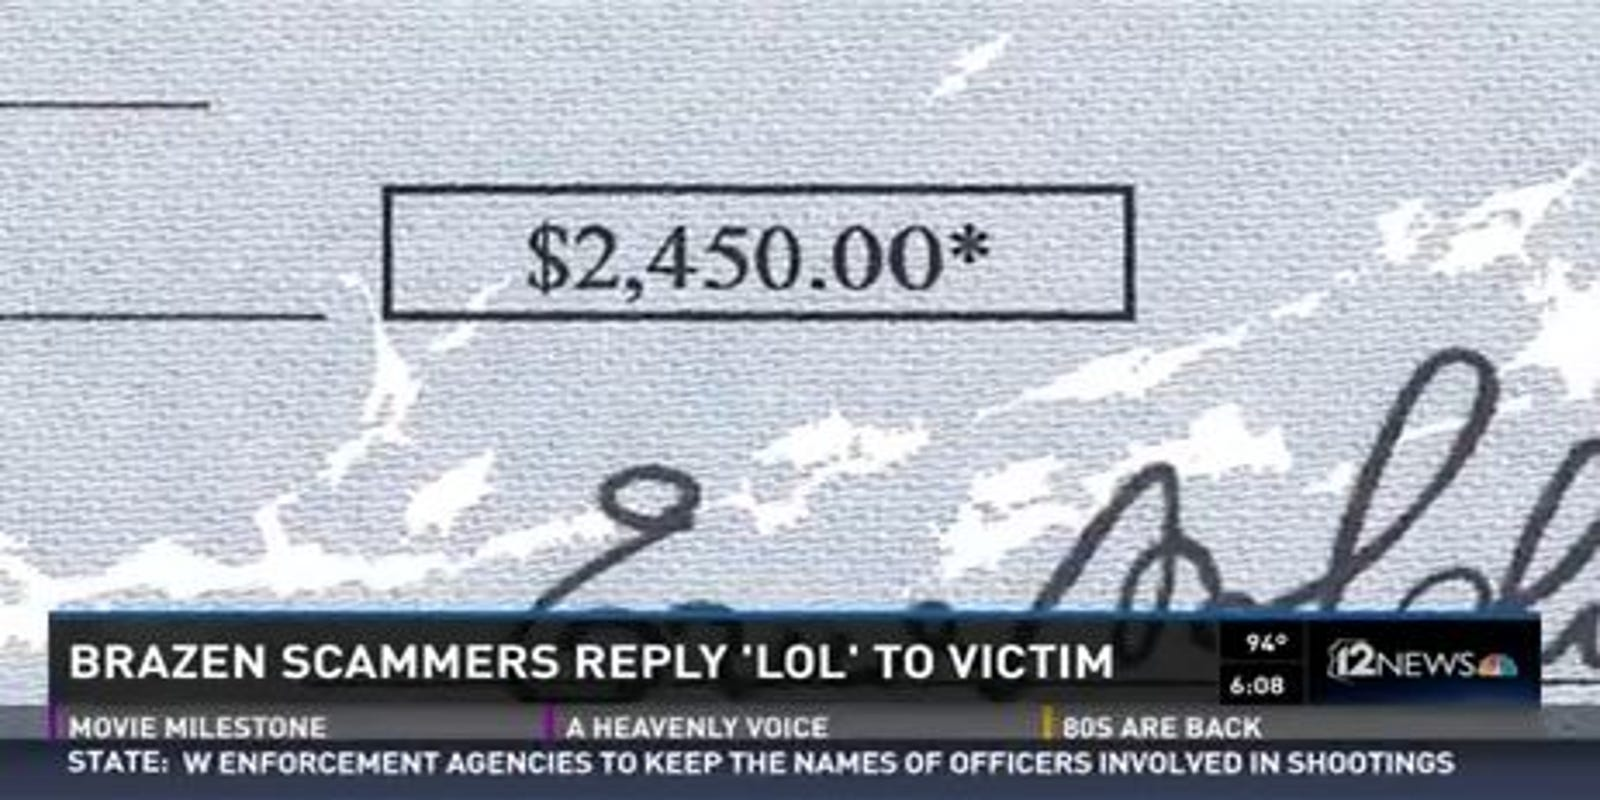 Usaa Cashiers Check >> Internet Fraudsters Reply Lol To Scam Victim